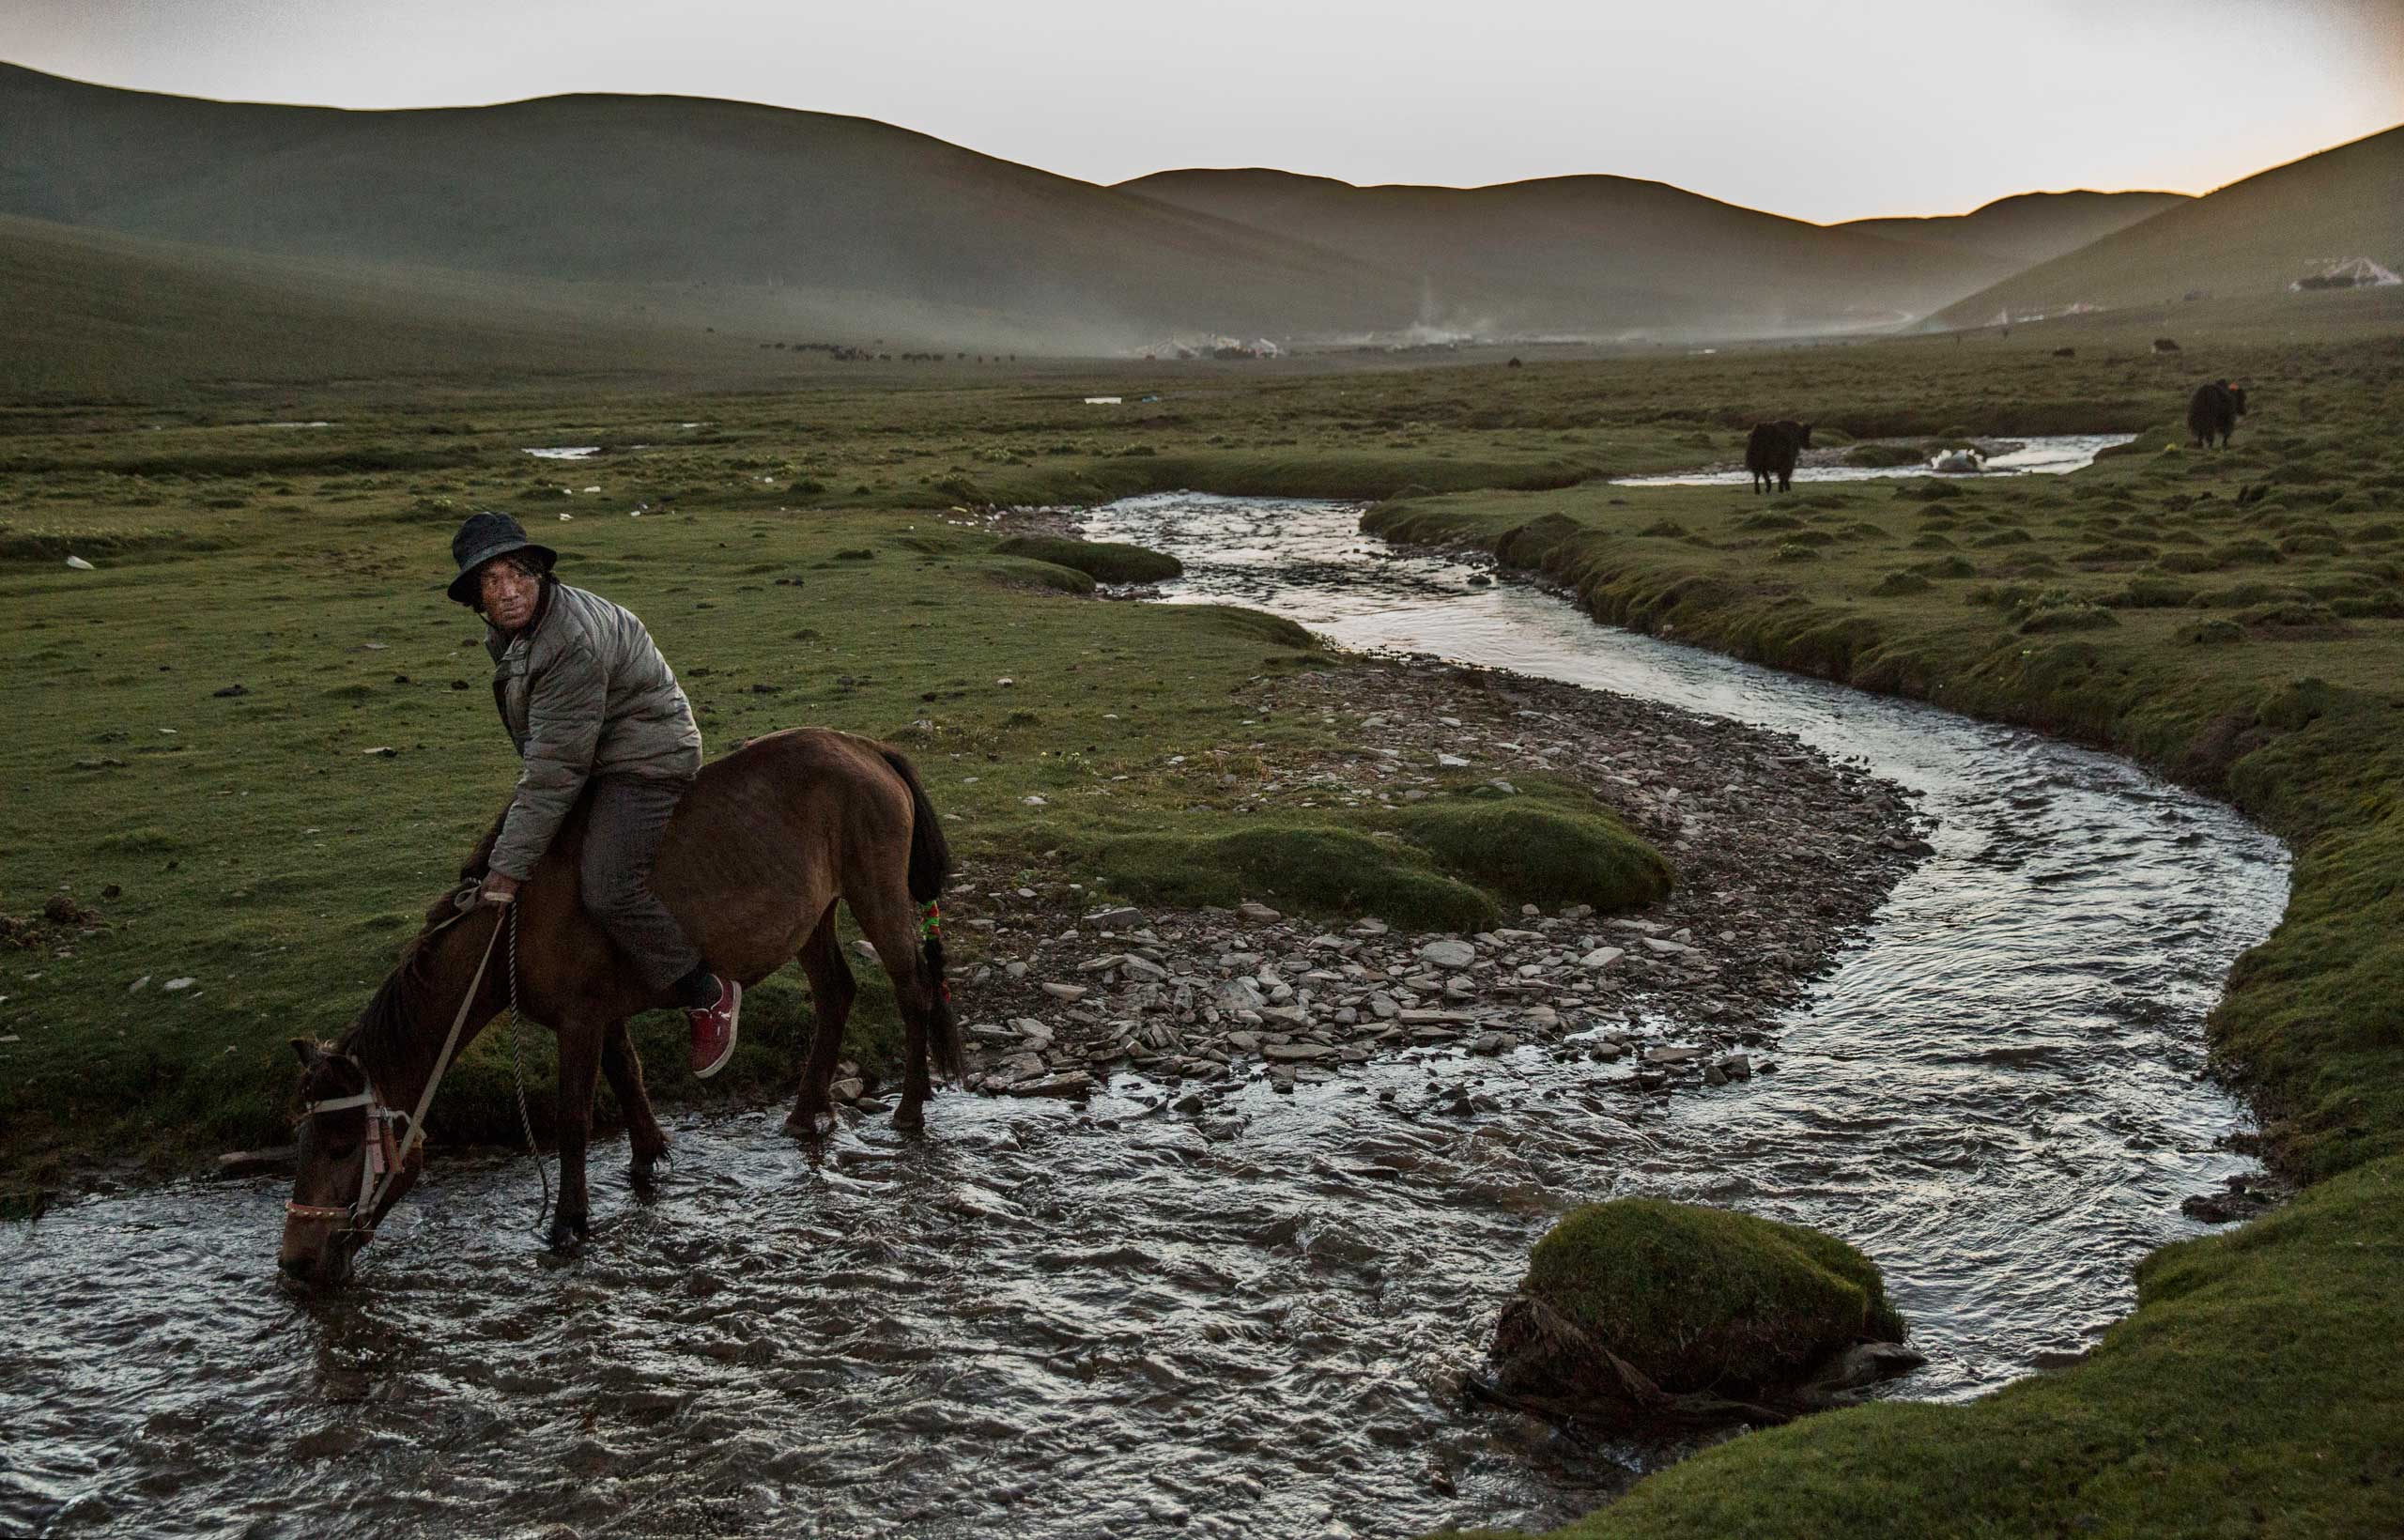 A ethnic Tibetan nomad waters his horse while herding at his summer grazing area on the Tibetan Plateau in Yushu County, on July 24, 2015.